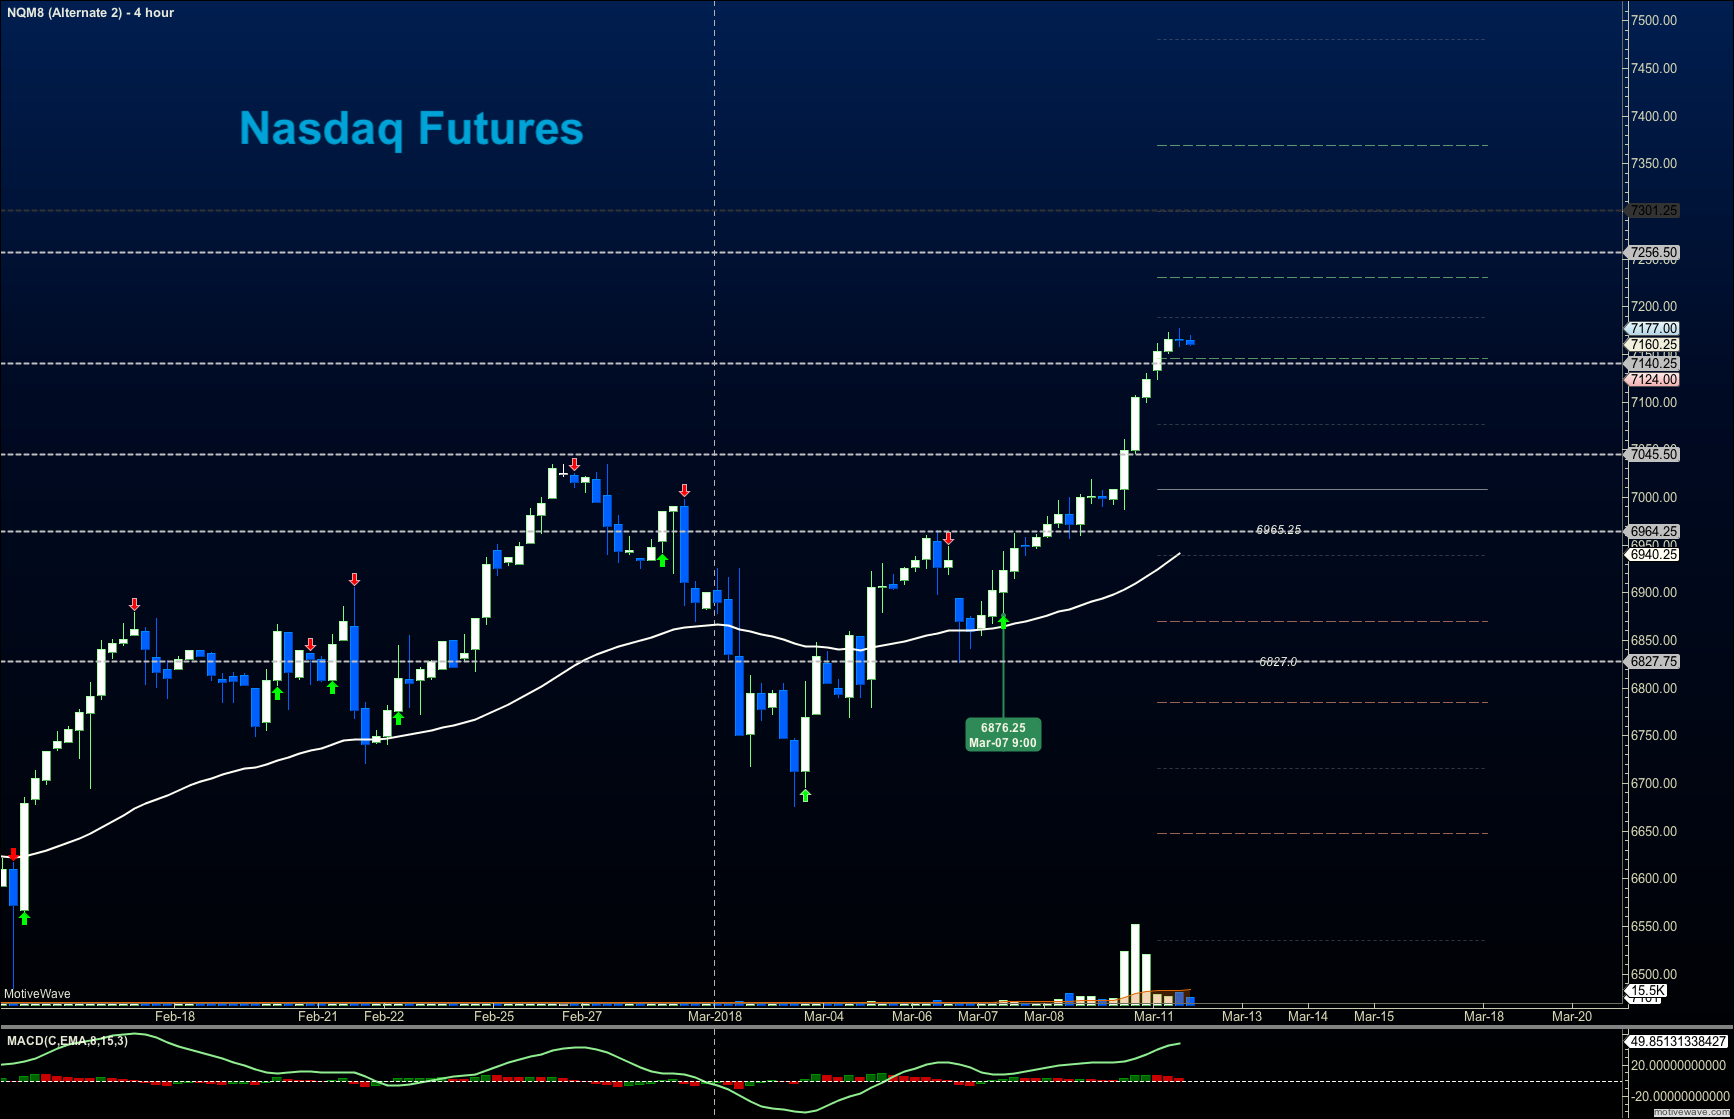 nasdaq march 12 trading price chart rally news